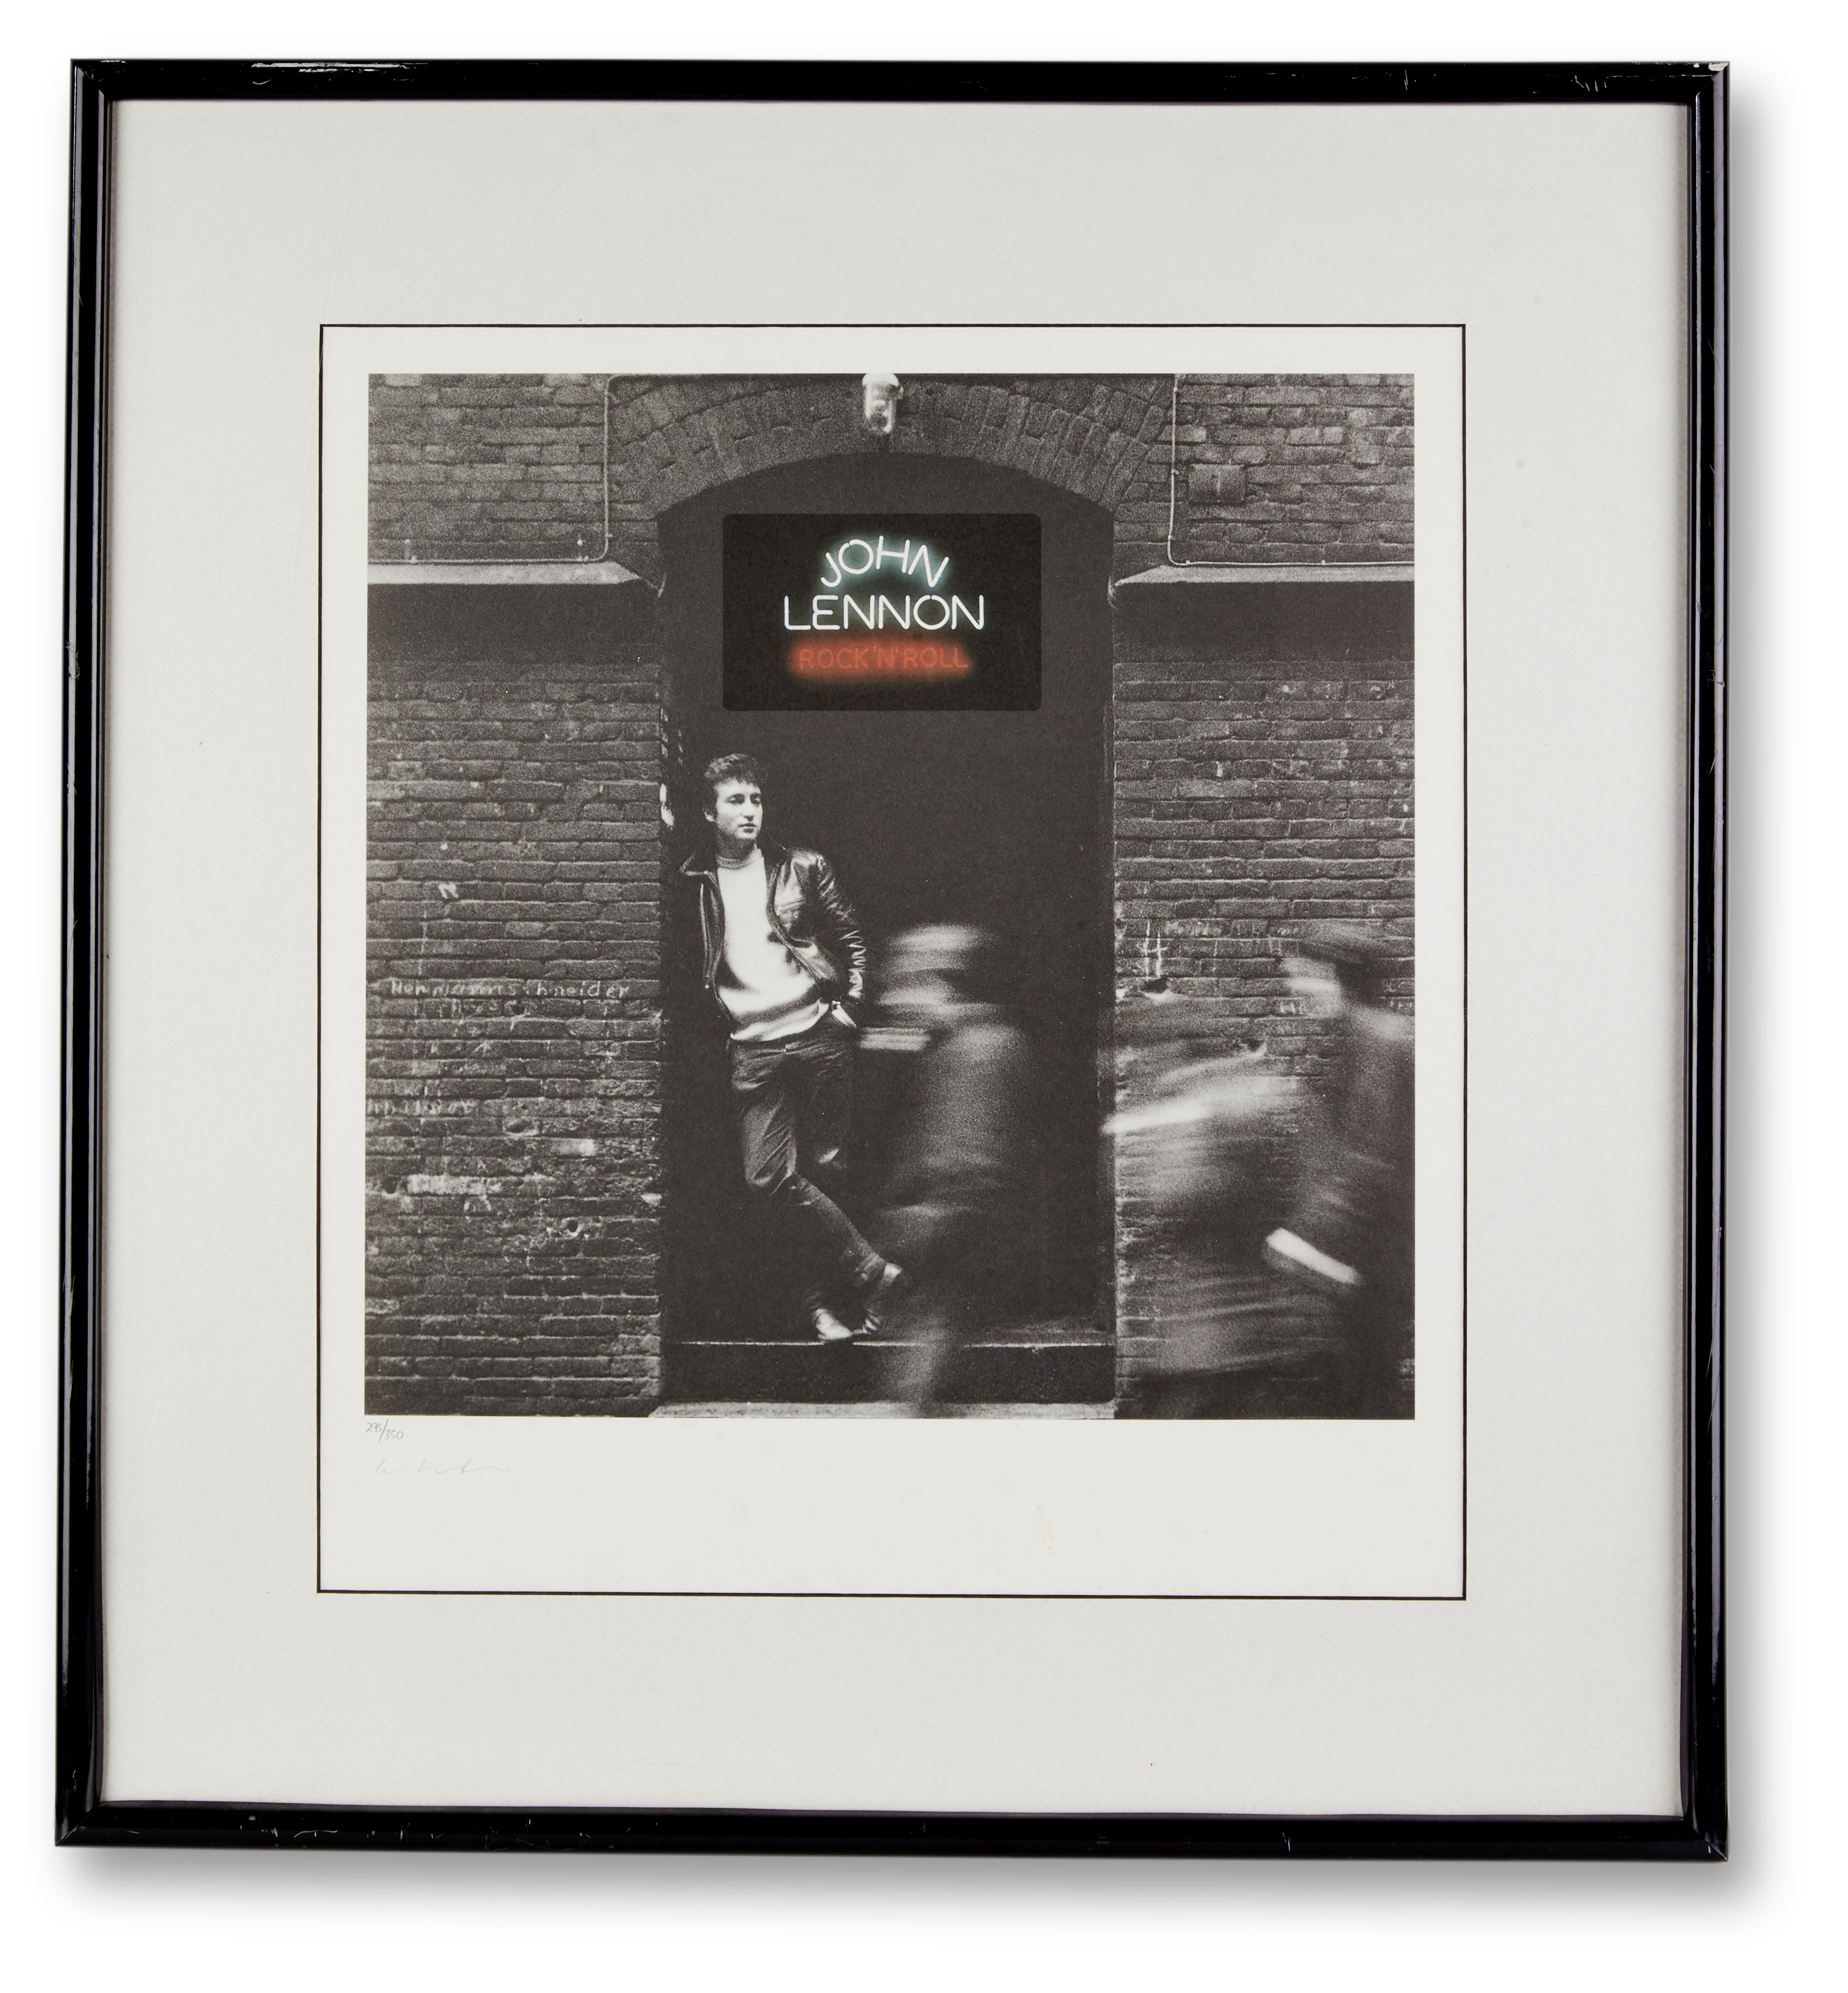 Lot 27 - A Limited Edition Print Of The Cover Of The John Lennon Album Rock 'n' Roll Signed By Yoko Ono mi...